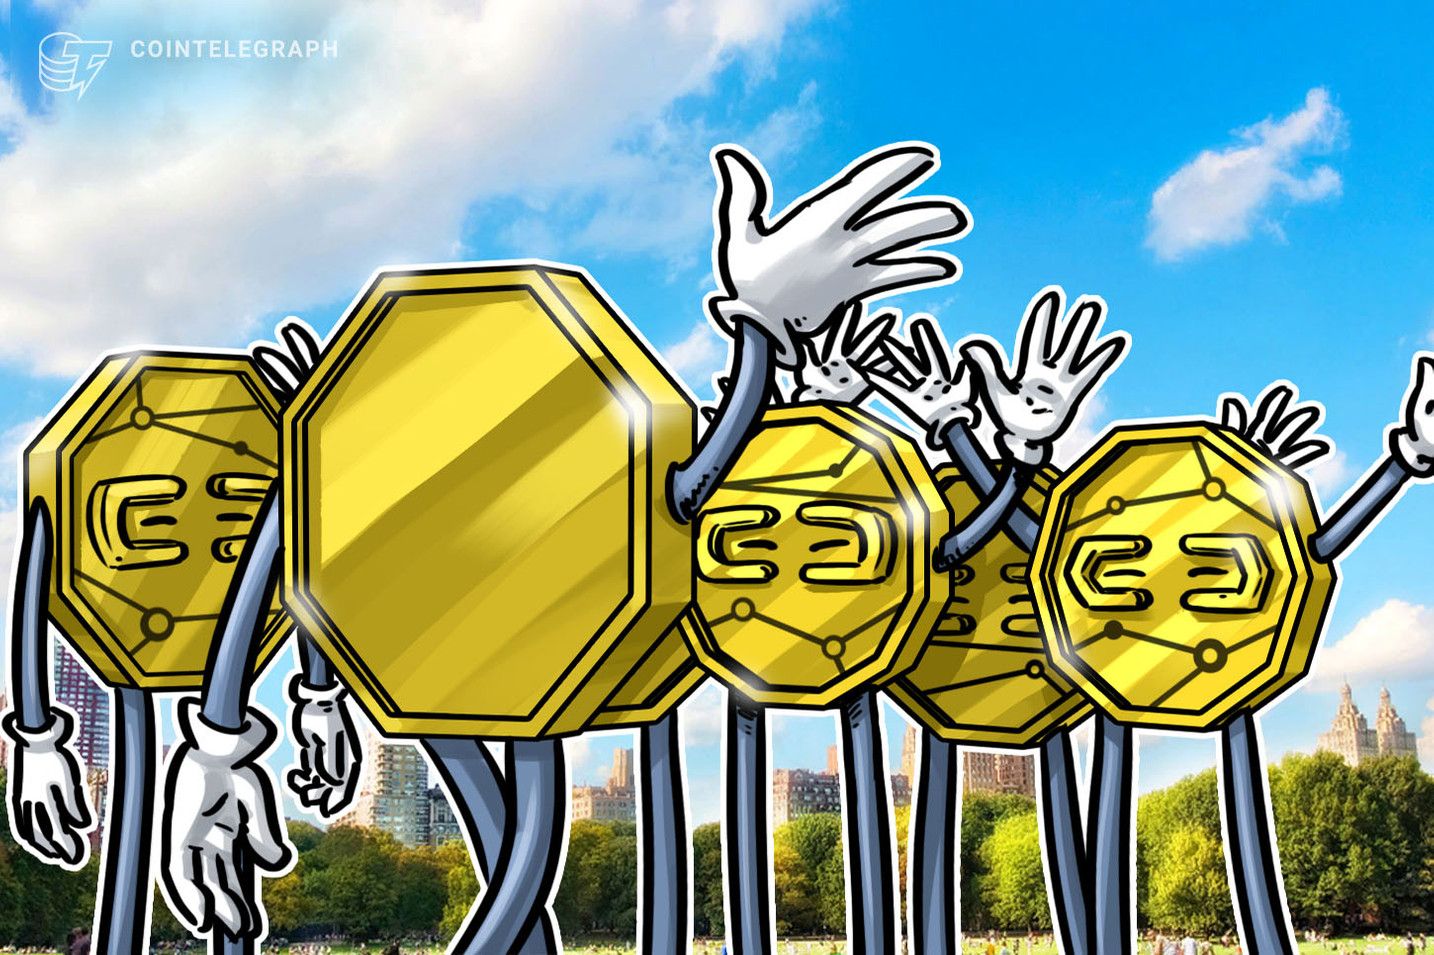 Japan: Coincheck Completes Token Additions With Ripple, Factom Relaunch